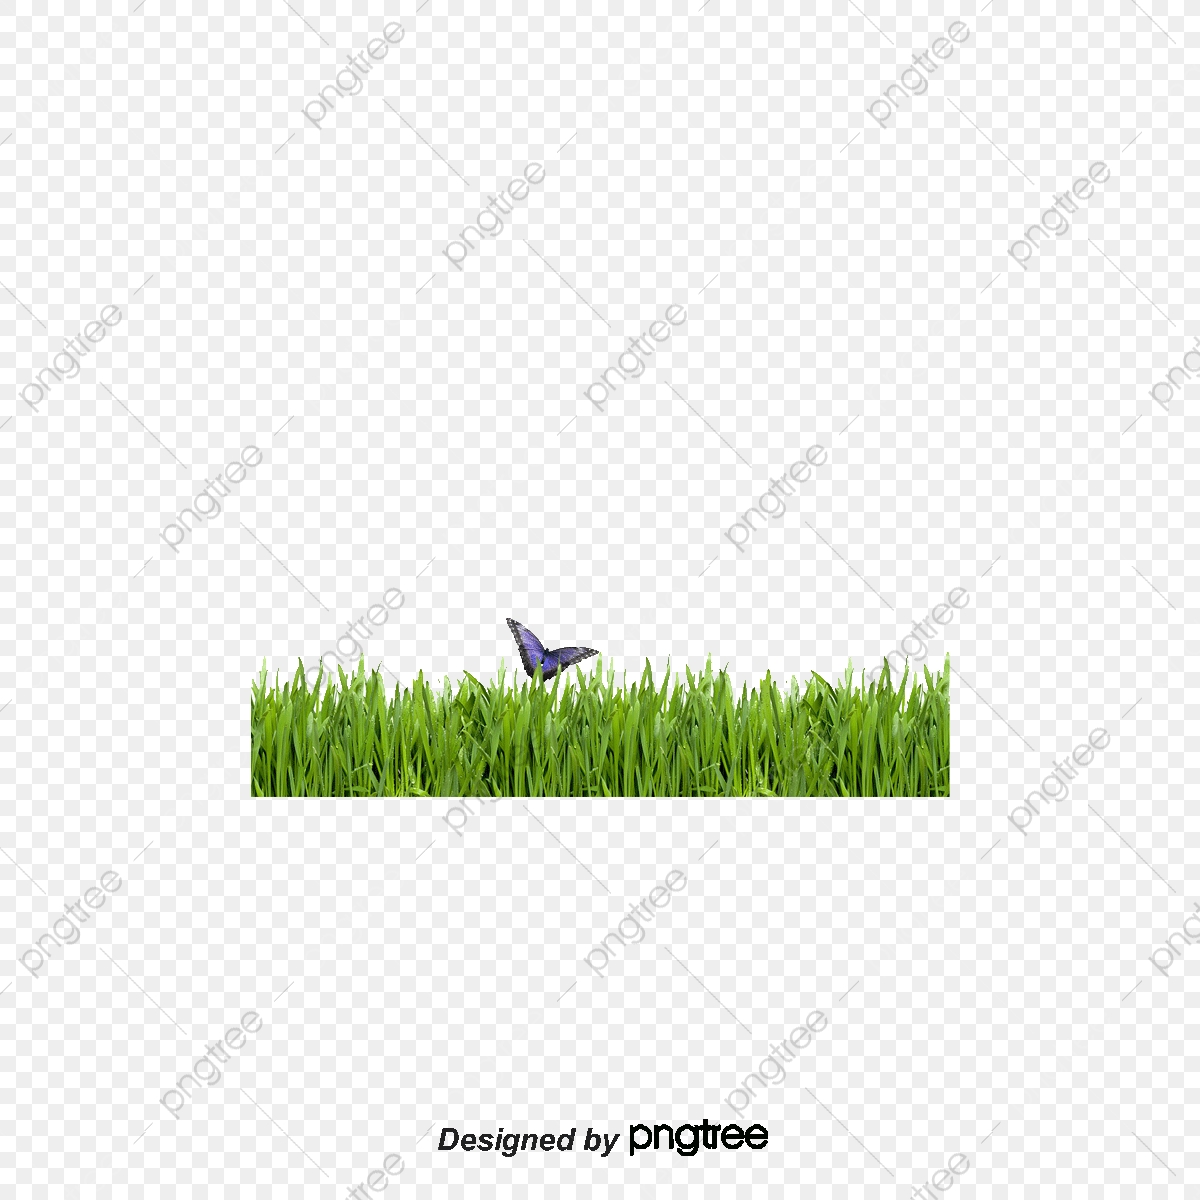 Hd Green Grass 1 Fuzzy Grass Background 570871 Png Images Pngio